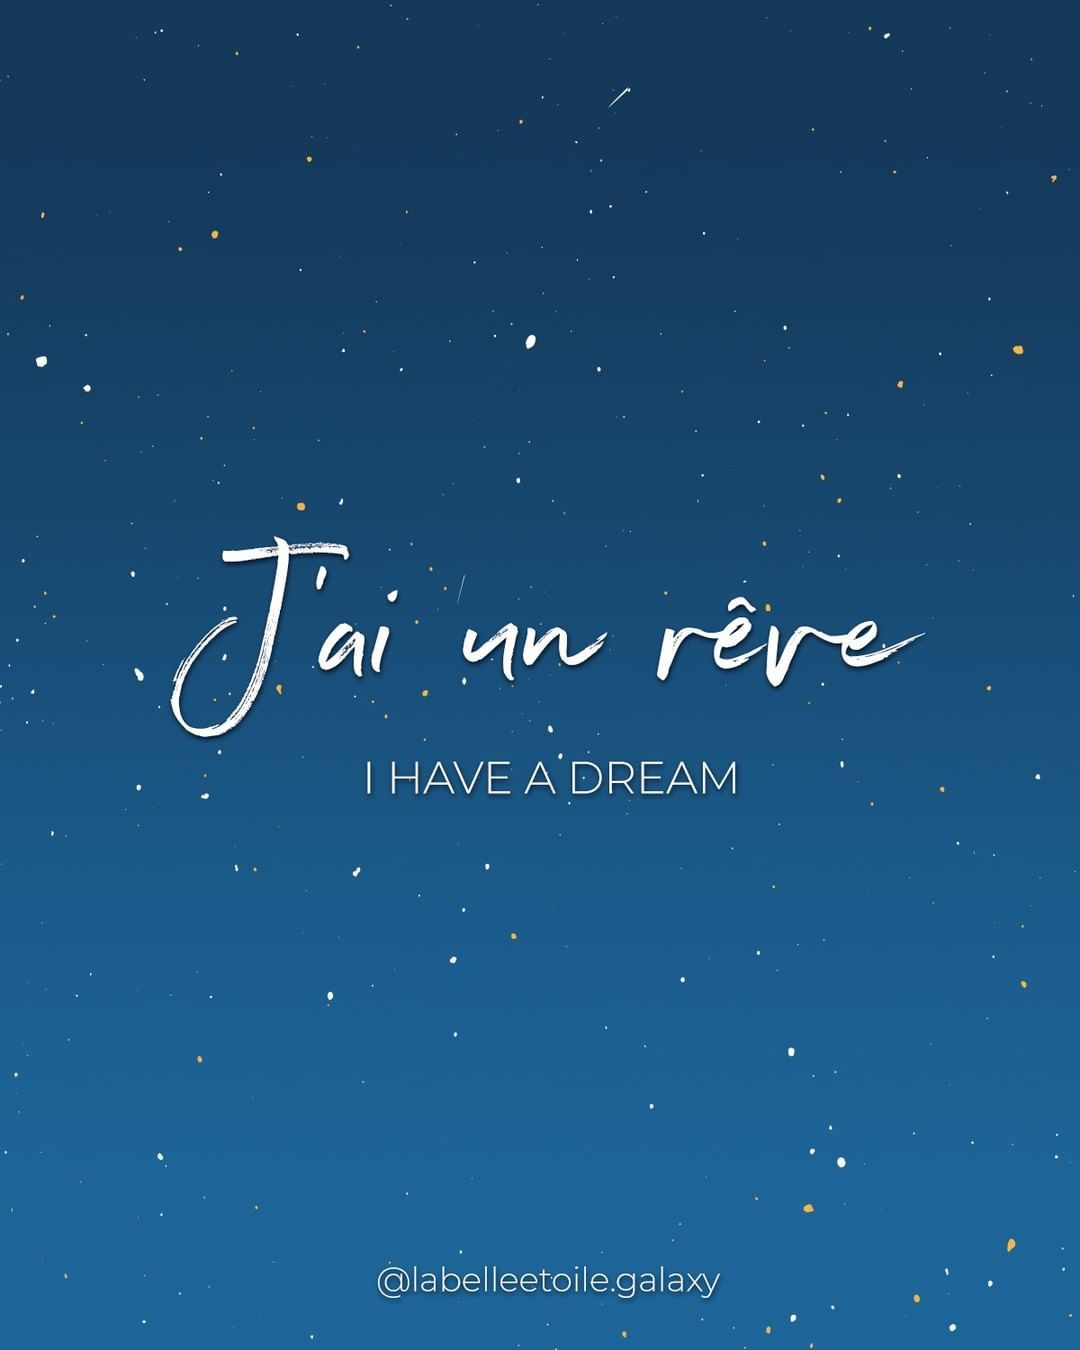 Speak French W La Belle Etoile On Instagram J Ai Un Reve I Have A Dream French Speakfrench French Love Quotes How To Speak French French Quotes